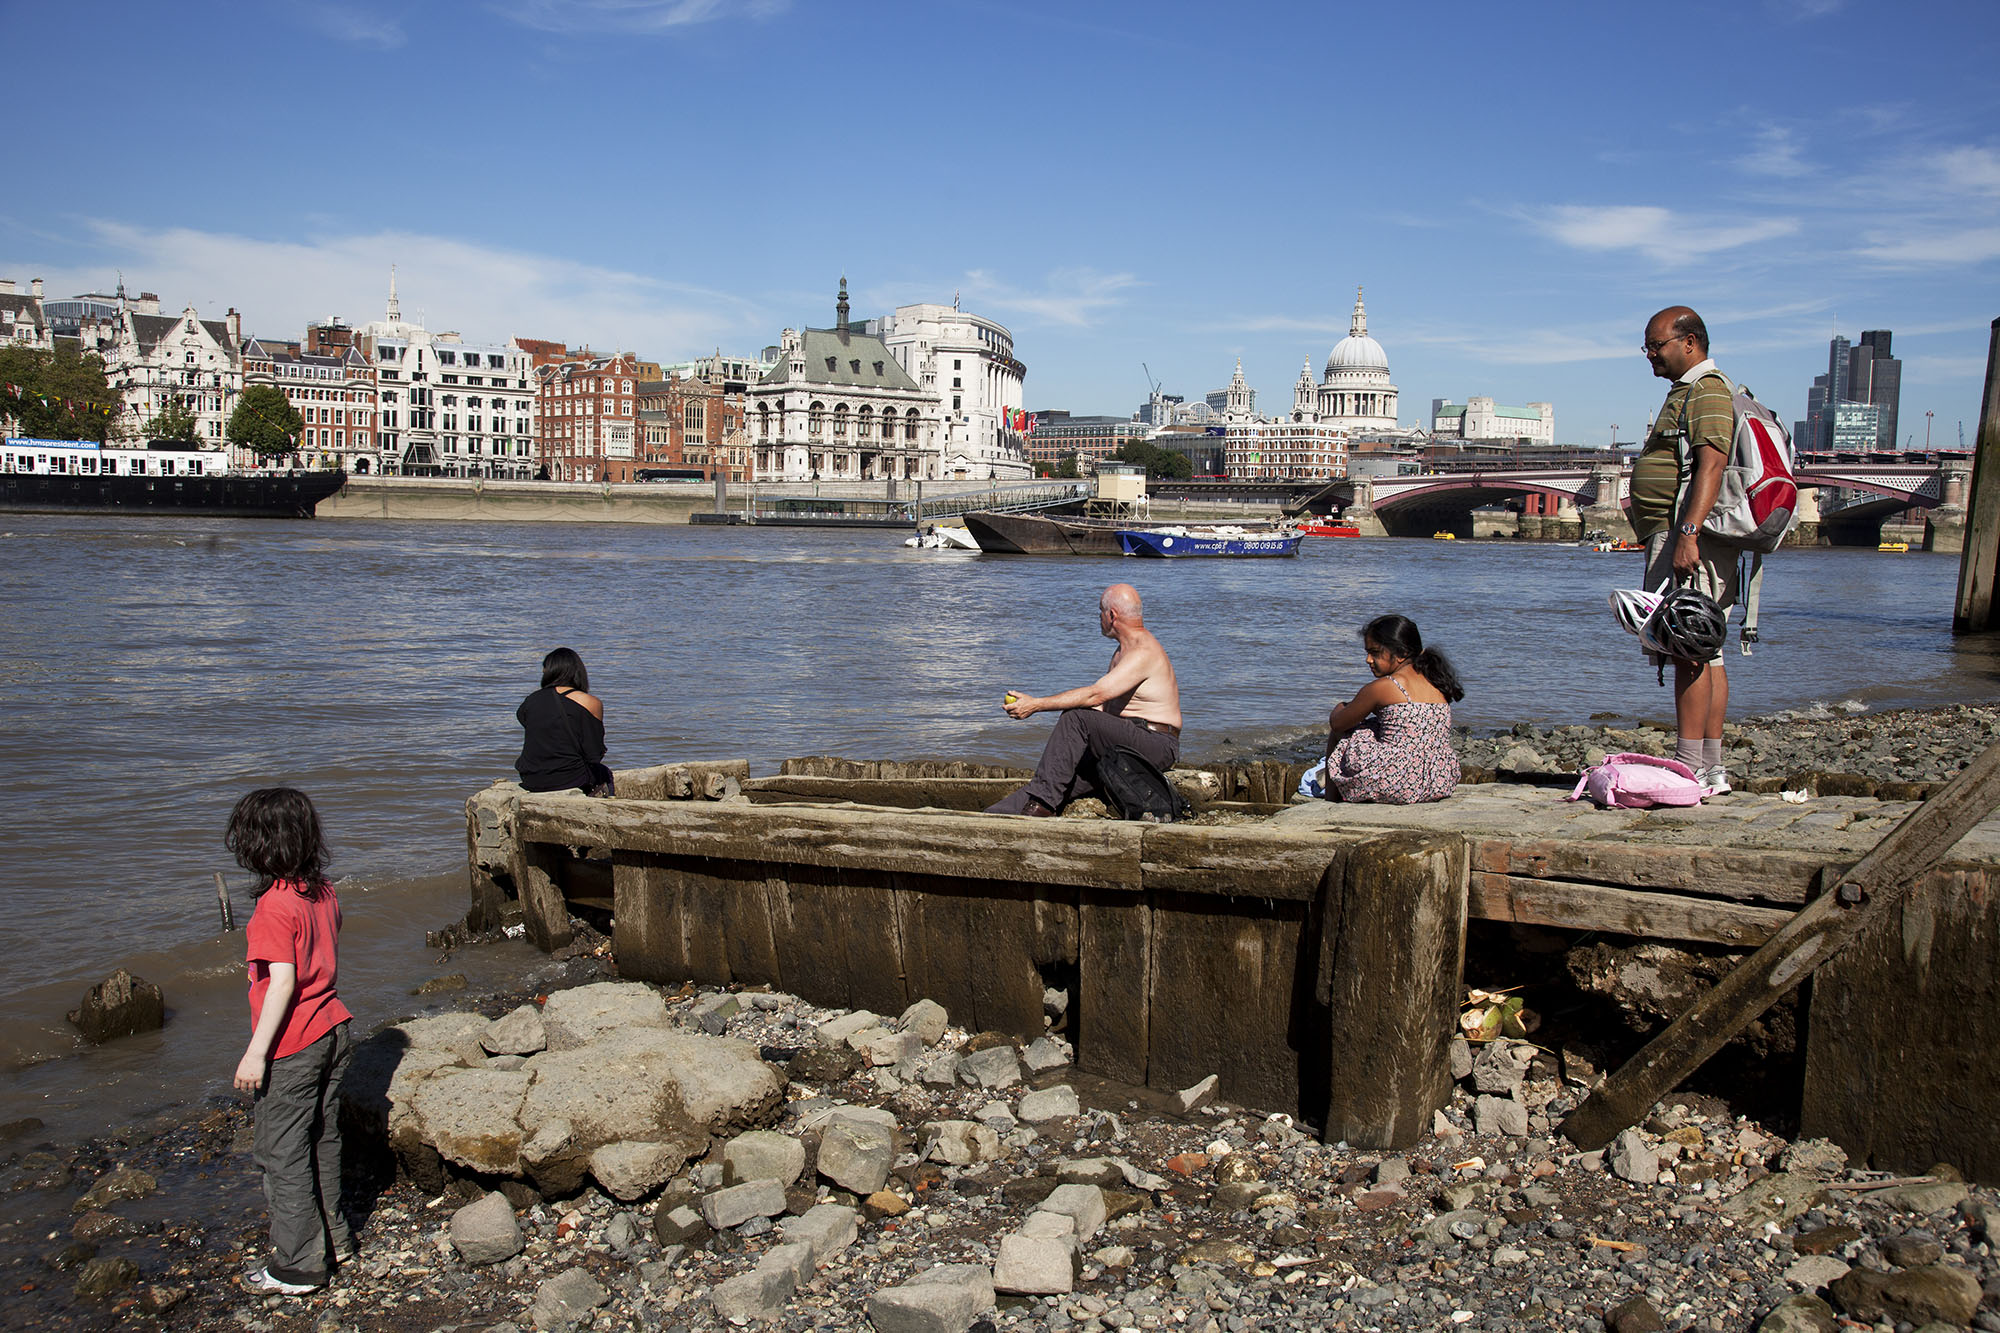 At low tide on the South Bank riverfront, people gather to sit on an old jetty